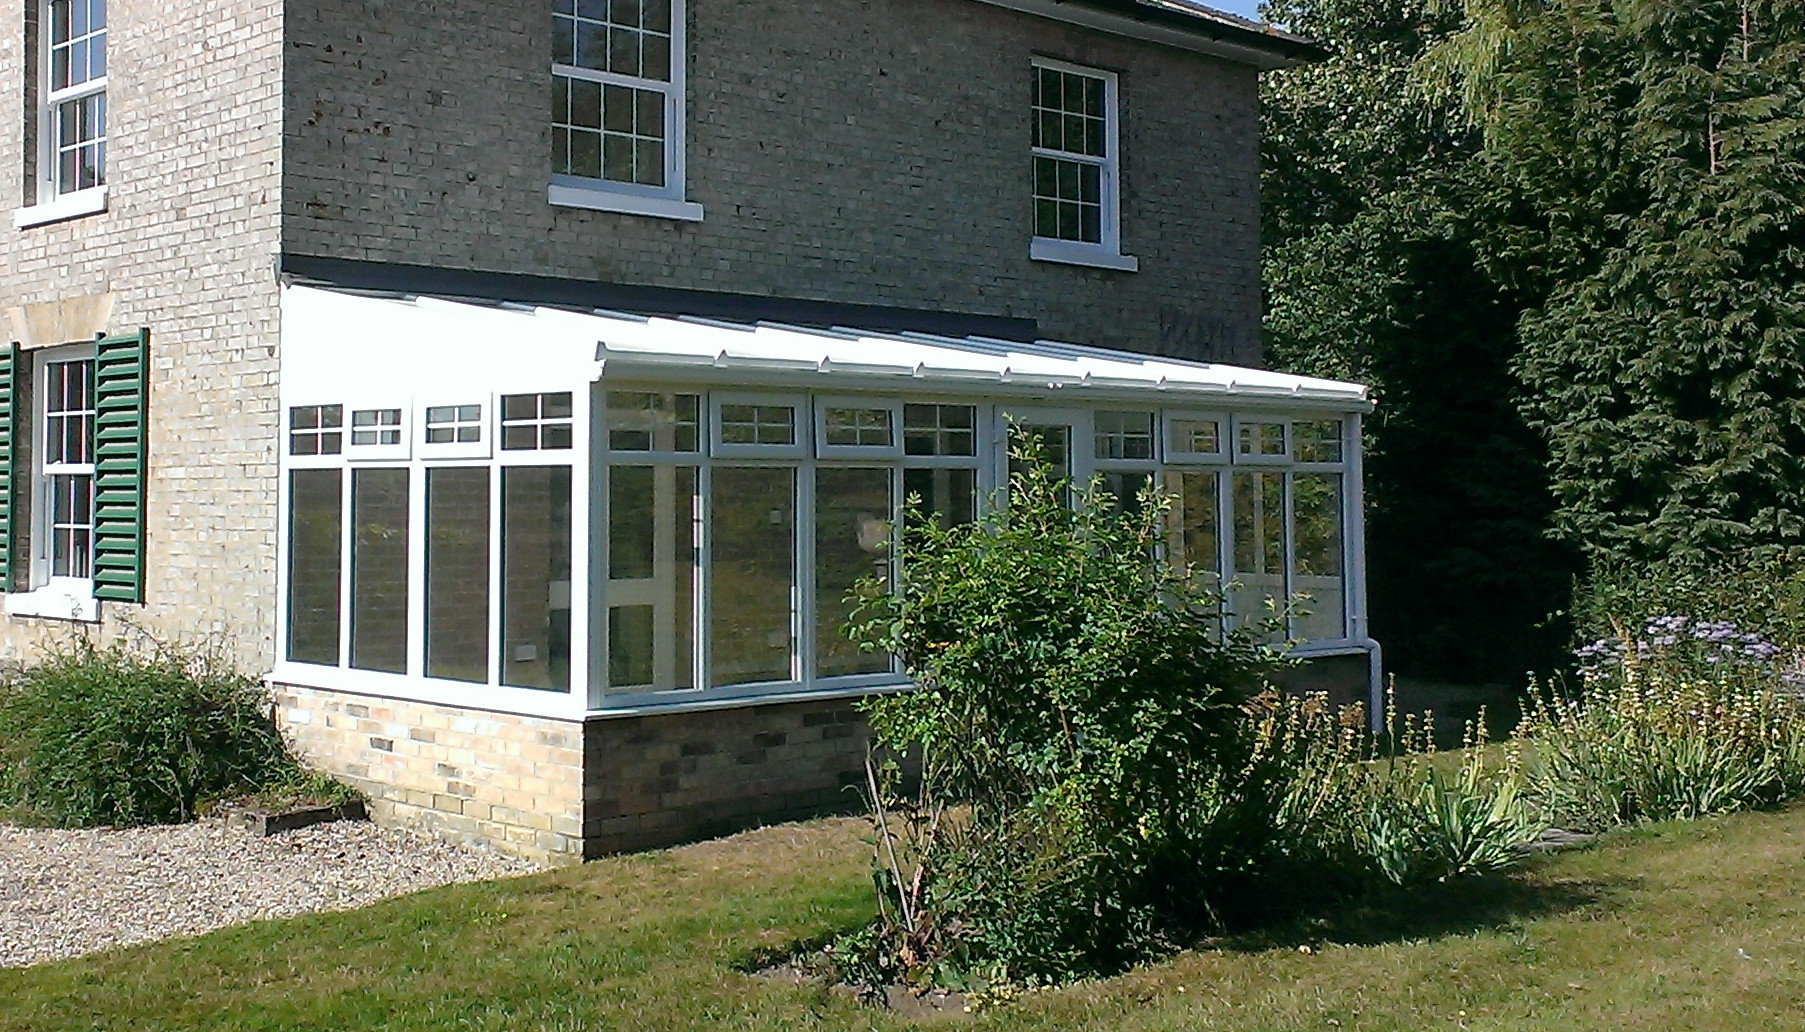 Conservatory lean-to roof for glass or polycarbonate.